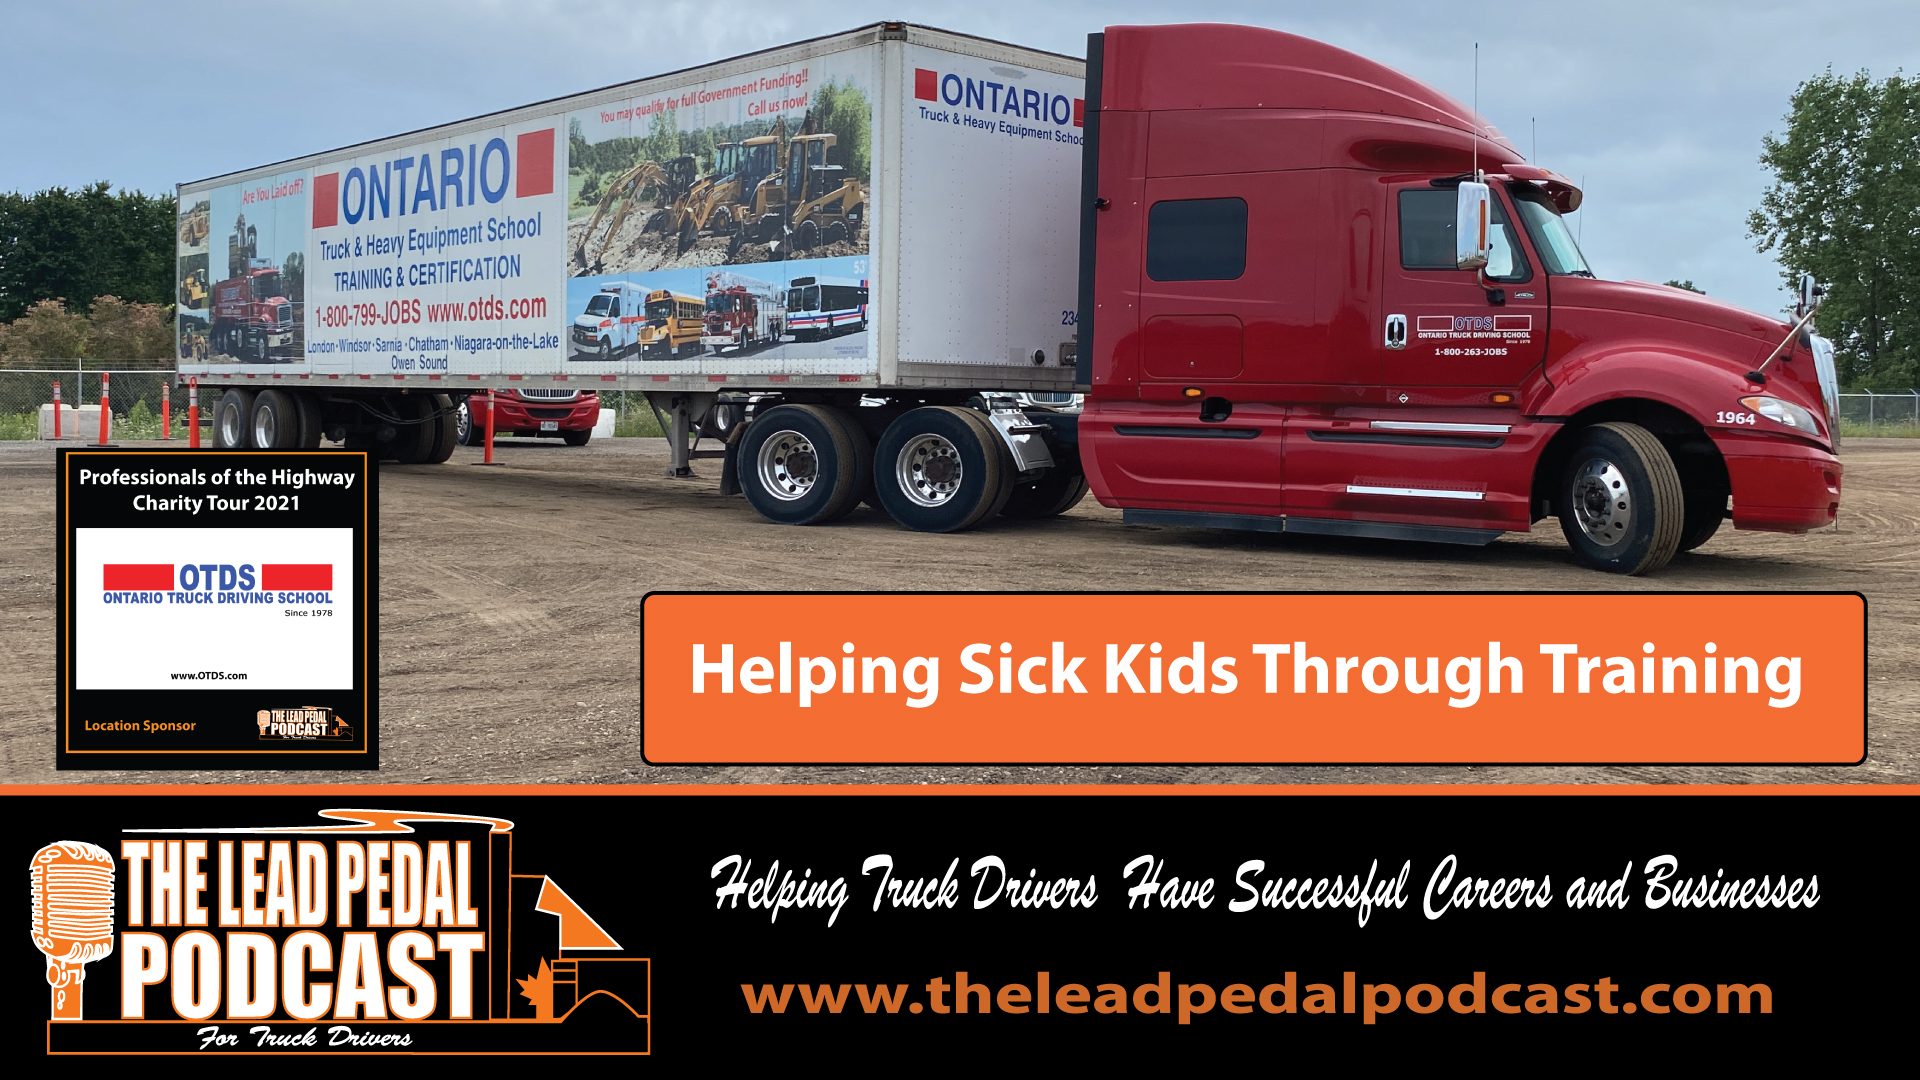 LP687 Professionals of the Highway Charity Tour Stops at Ontario Truck Driving School in London Ontario.